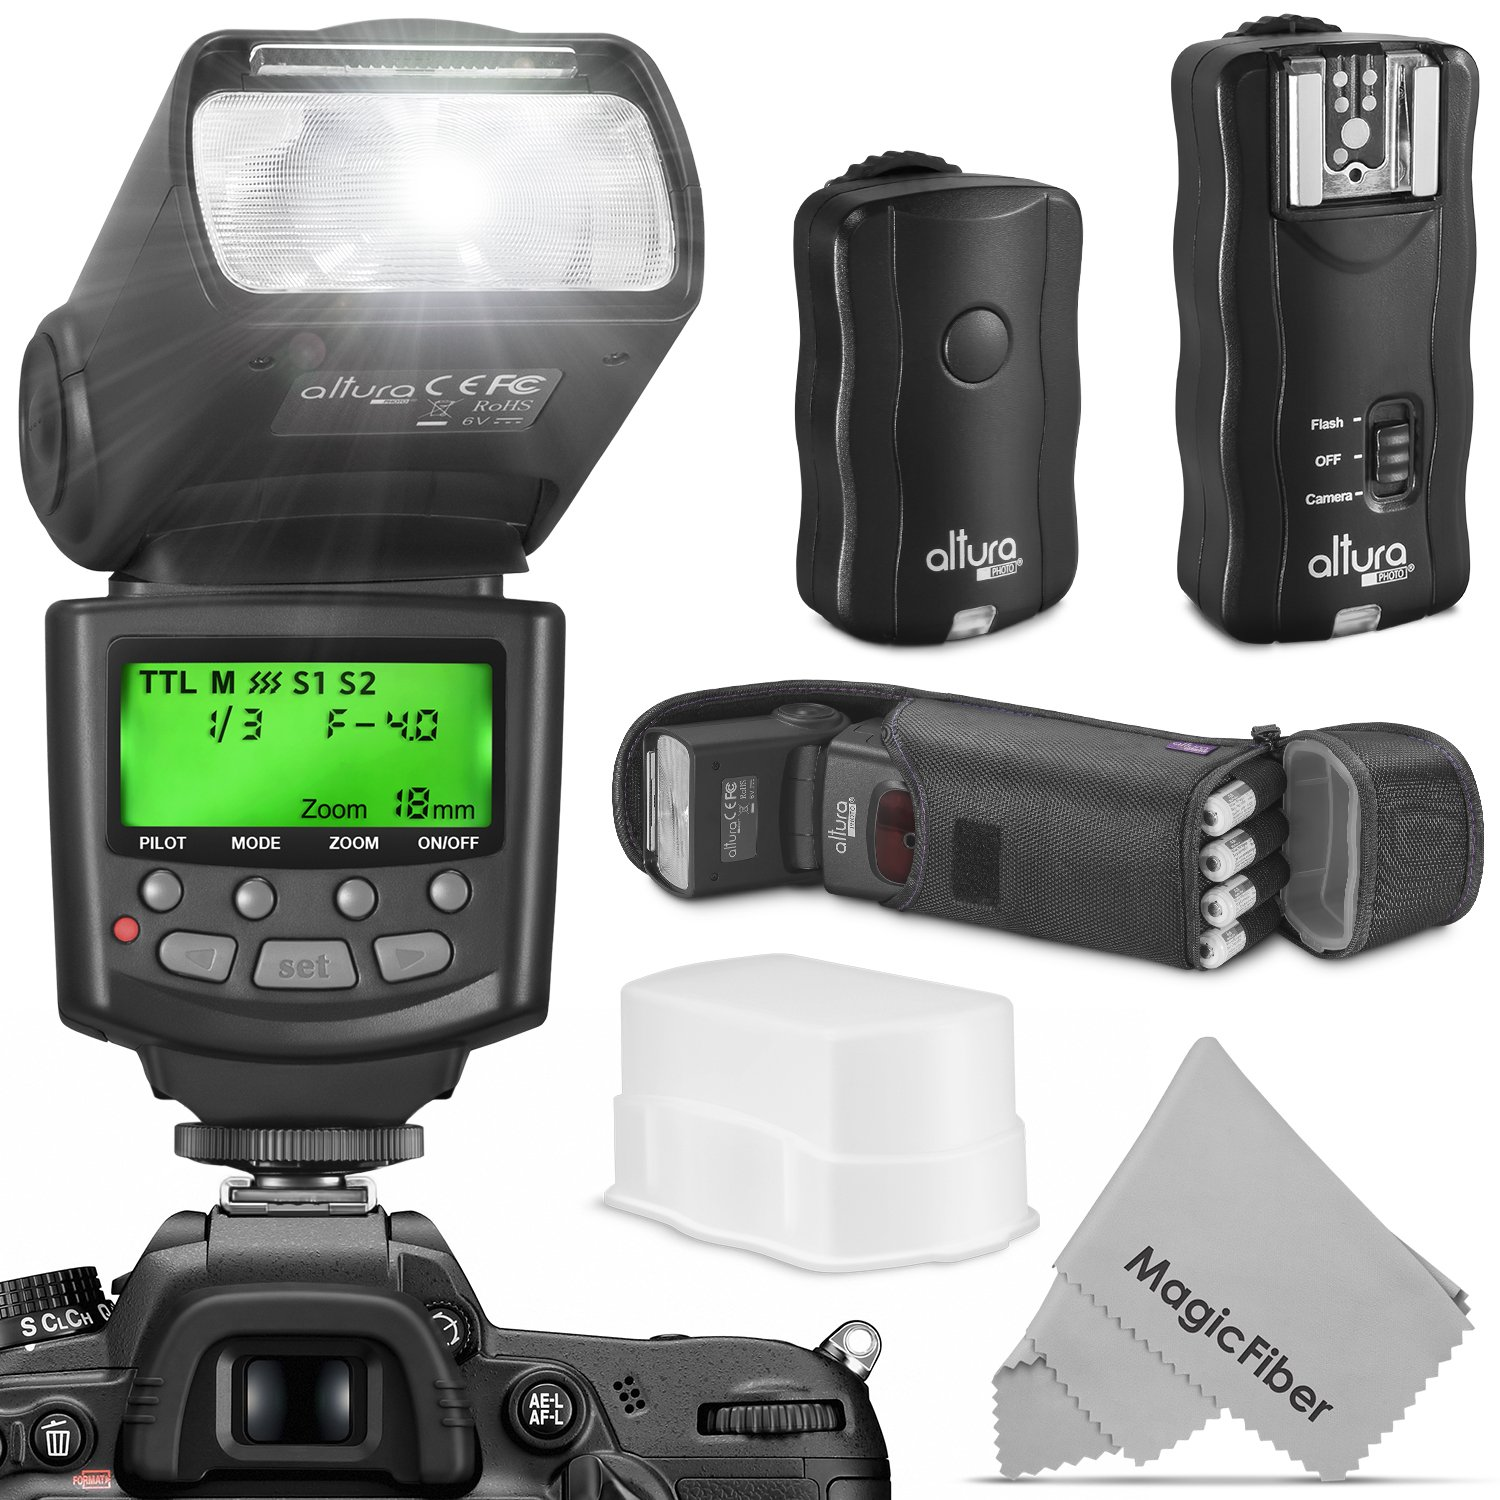 Altura Photo Professional Flash Kit for Canon DSLR with E-TTL Flash AP-C1001, Wireless Flash Trigger Set and Accessories by Altura Photo